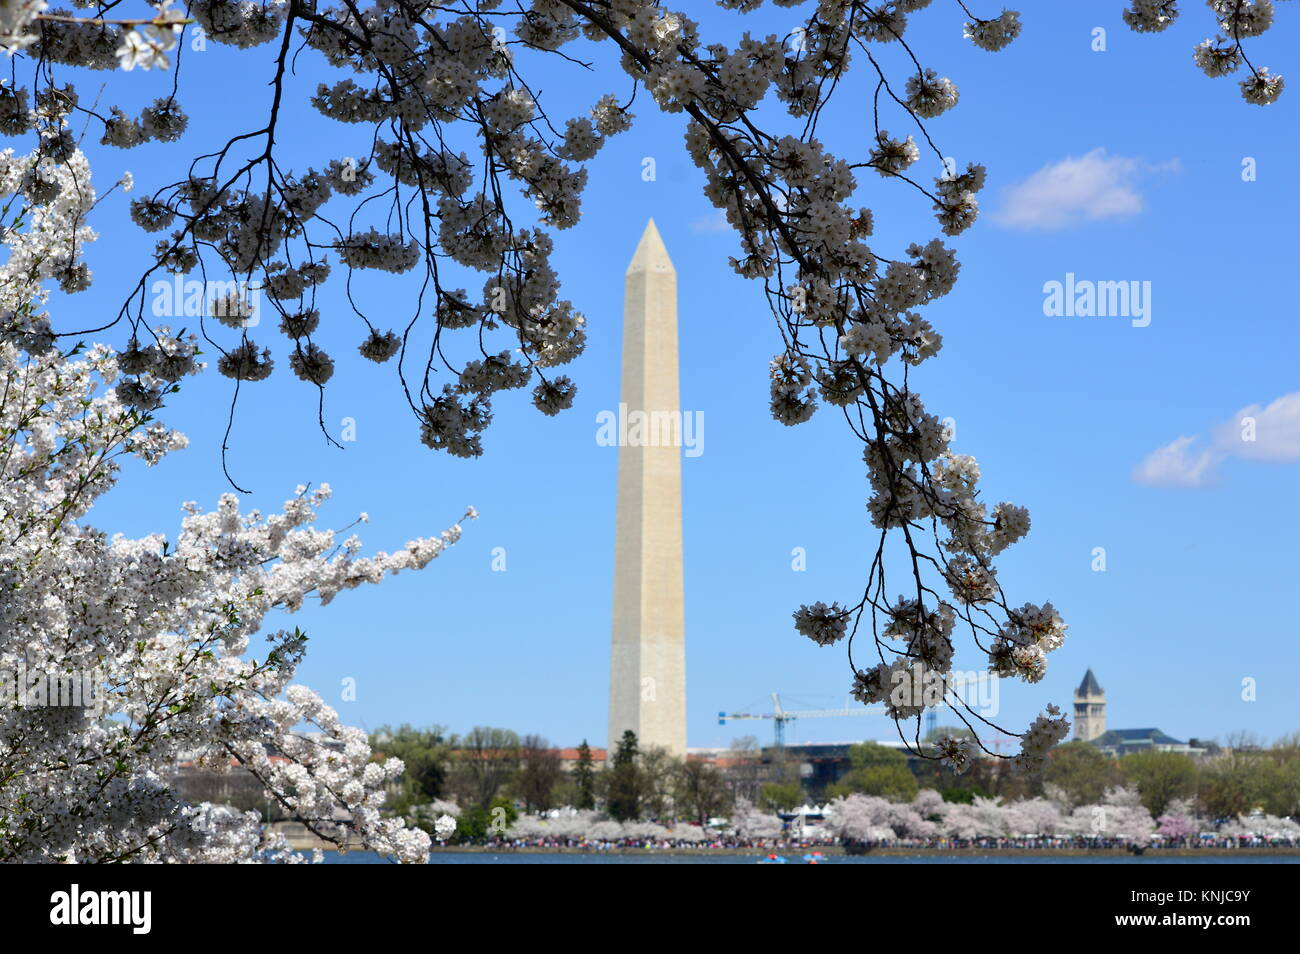 Washignton DC, Columbia, USA - April 11, 2015: view of Washington monument through cherry blossoms - Stock Image